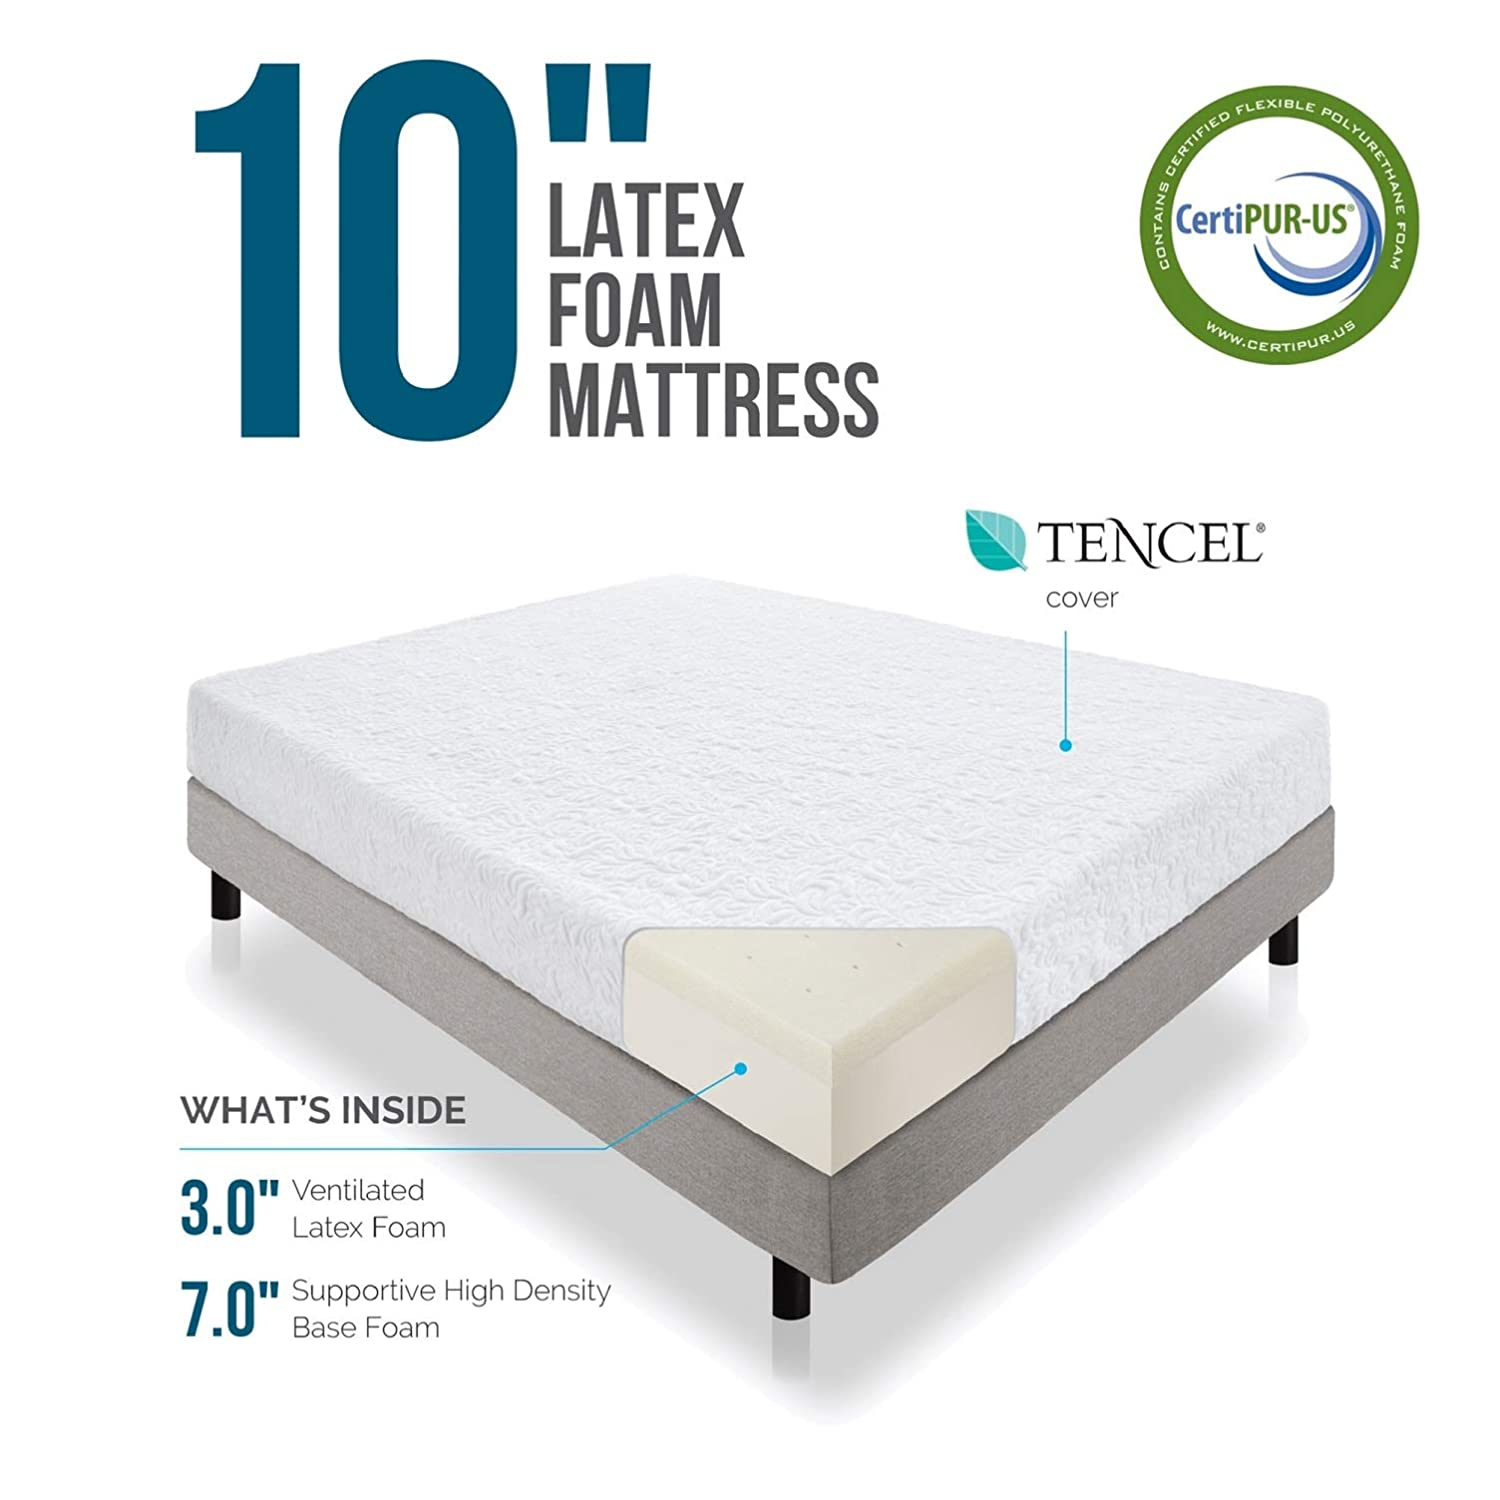 LUCID 10 Inch Latex Foam Mattress - Ventilated Design - CertiPUR-US Certified Foam - 10 Year Warranty - Twin with LUCID Encasement Mattress Protector ...